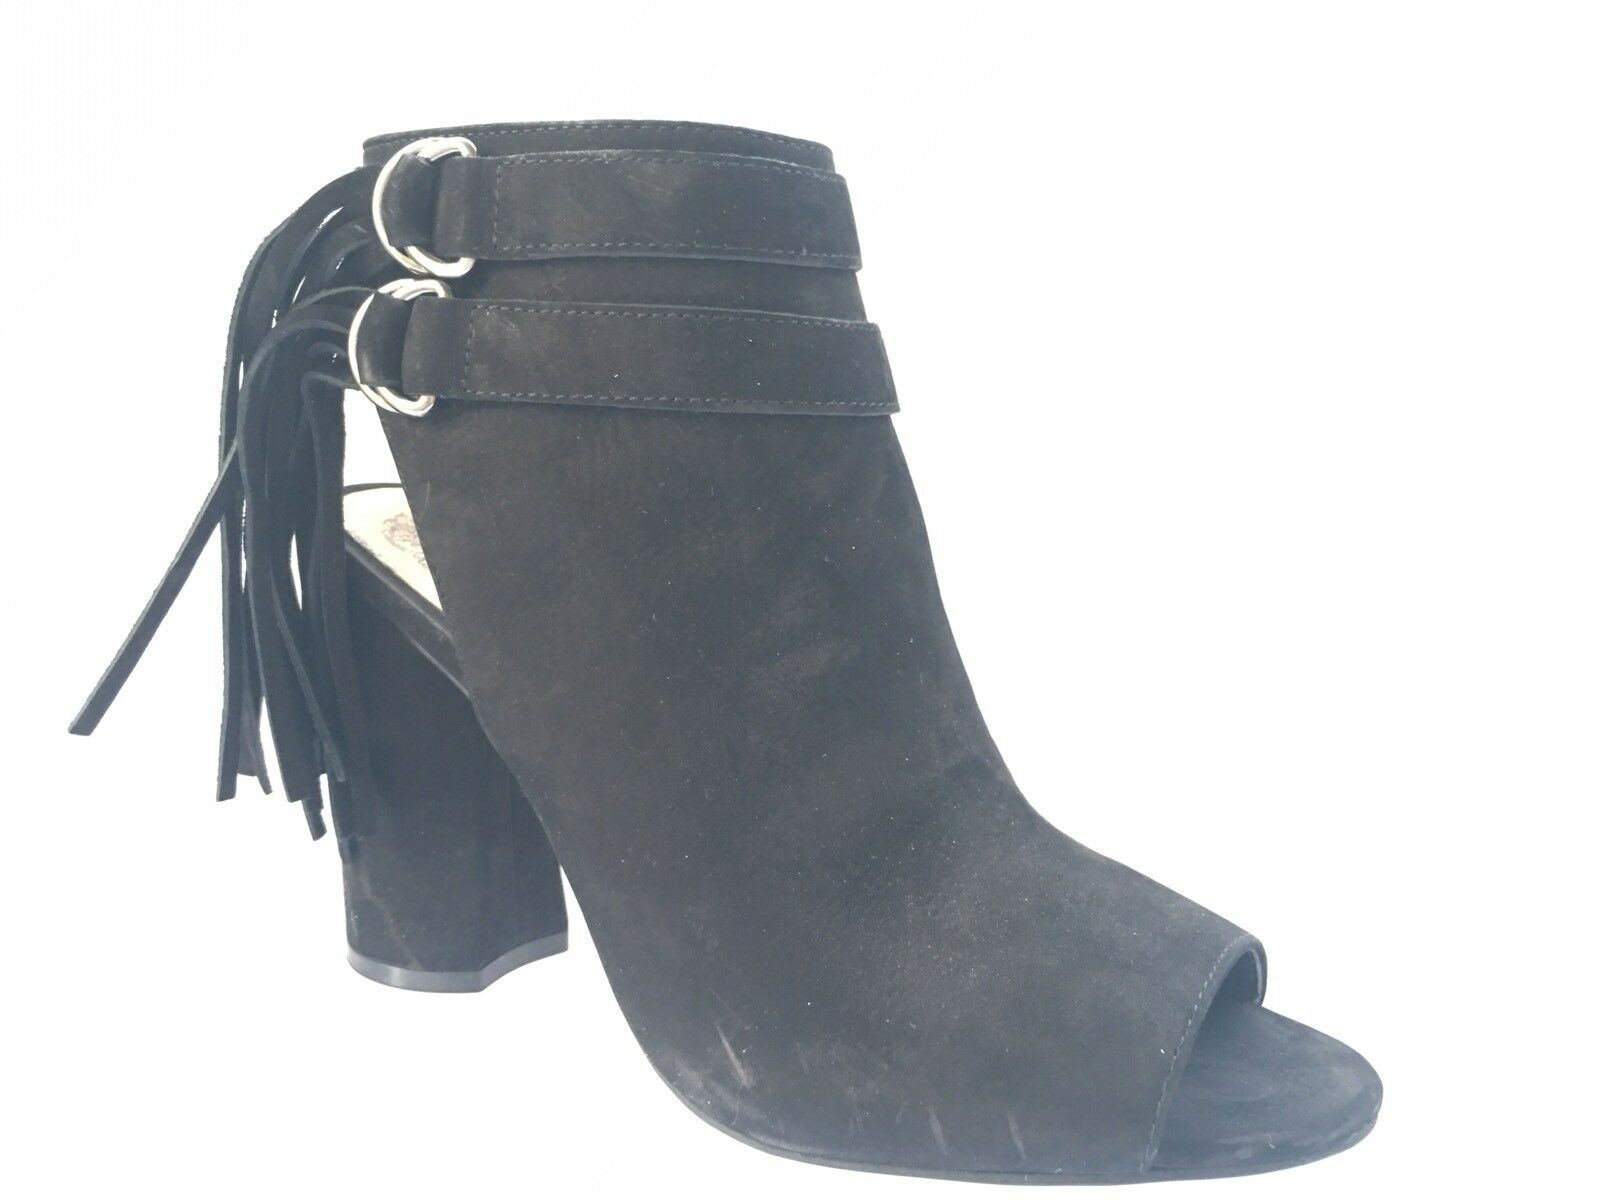 Vince Camuto Catinca Women Black Peep Toe Ankle Boot Stylish Shoes Size 7.5